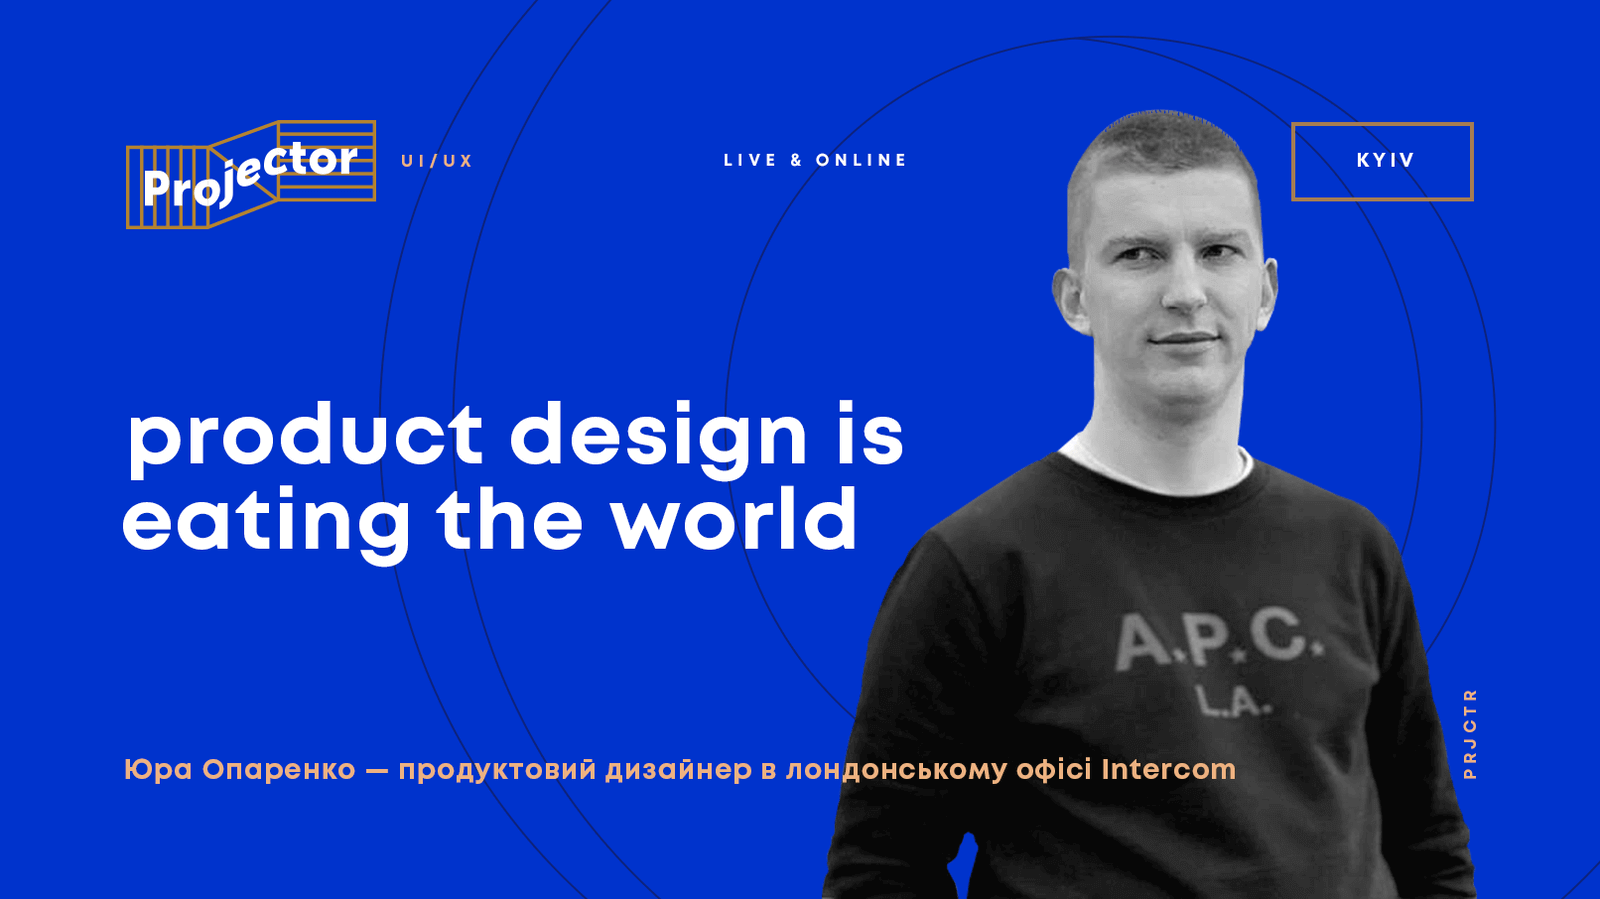 «Product design is eating the world»